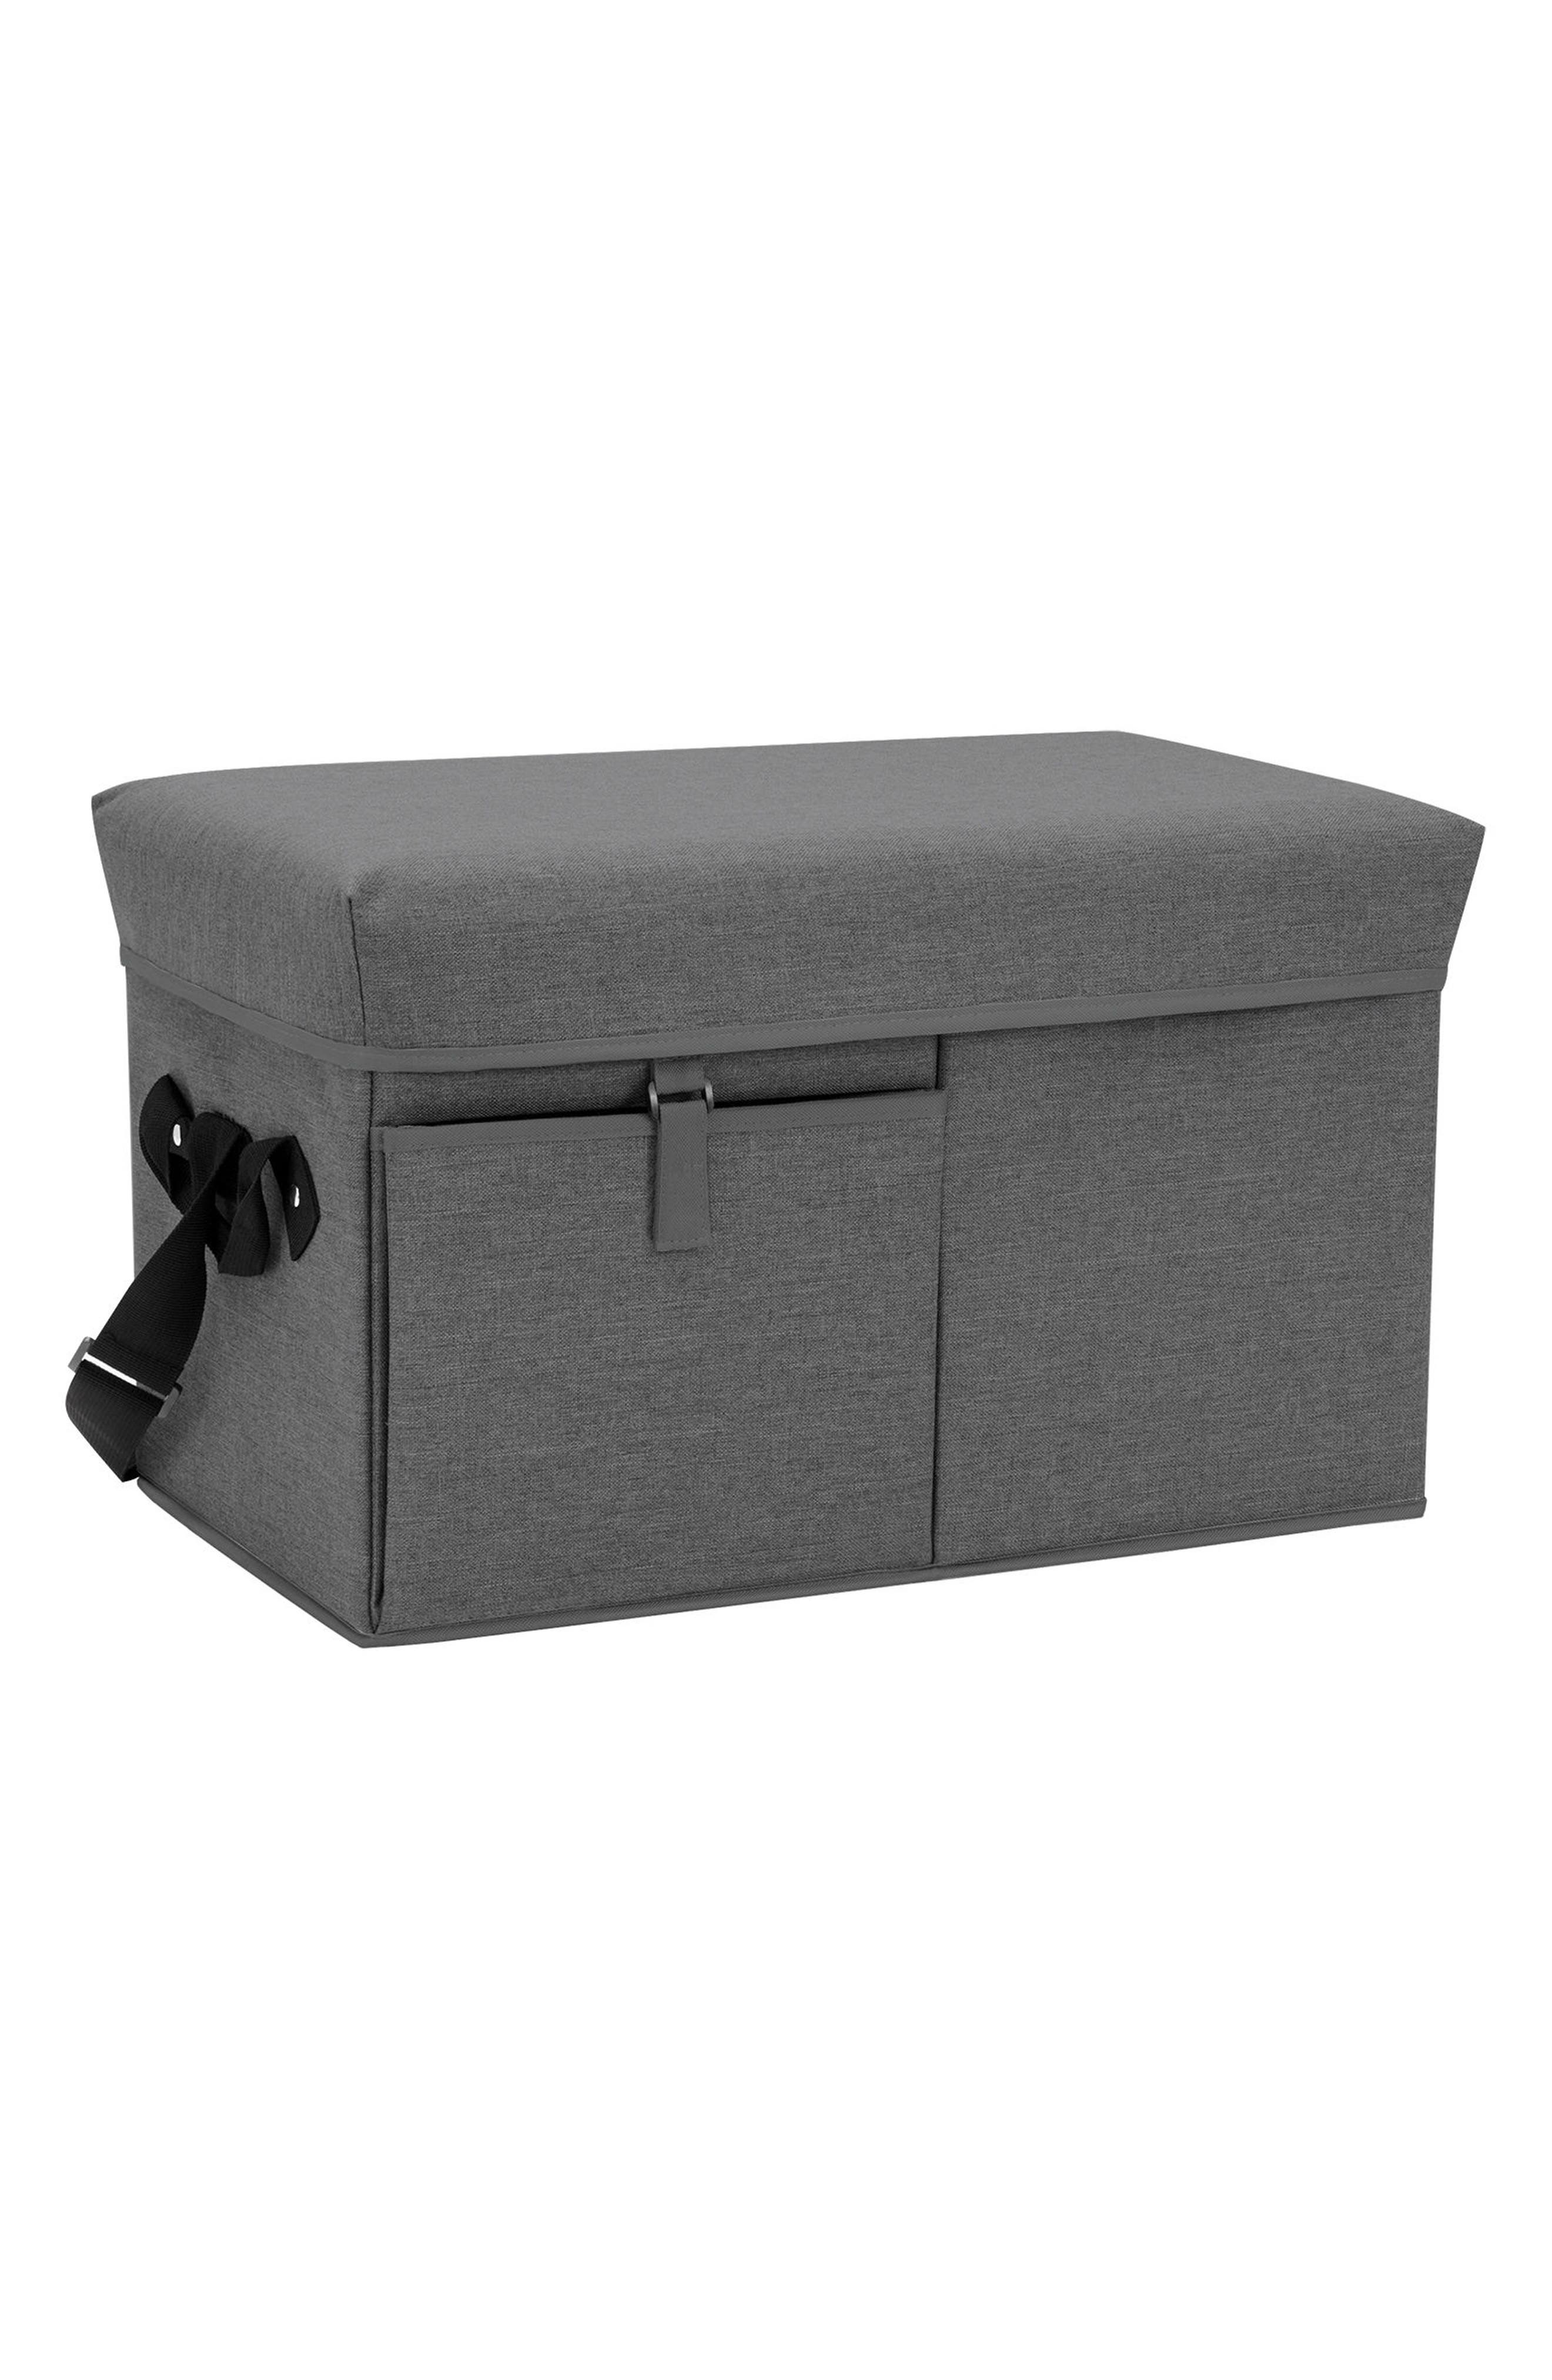 Picnic Time Ottoman Cooler,                         Main,                         color, 020